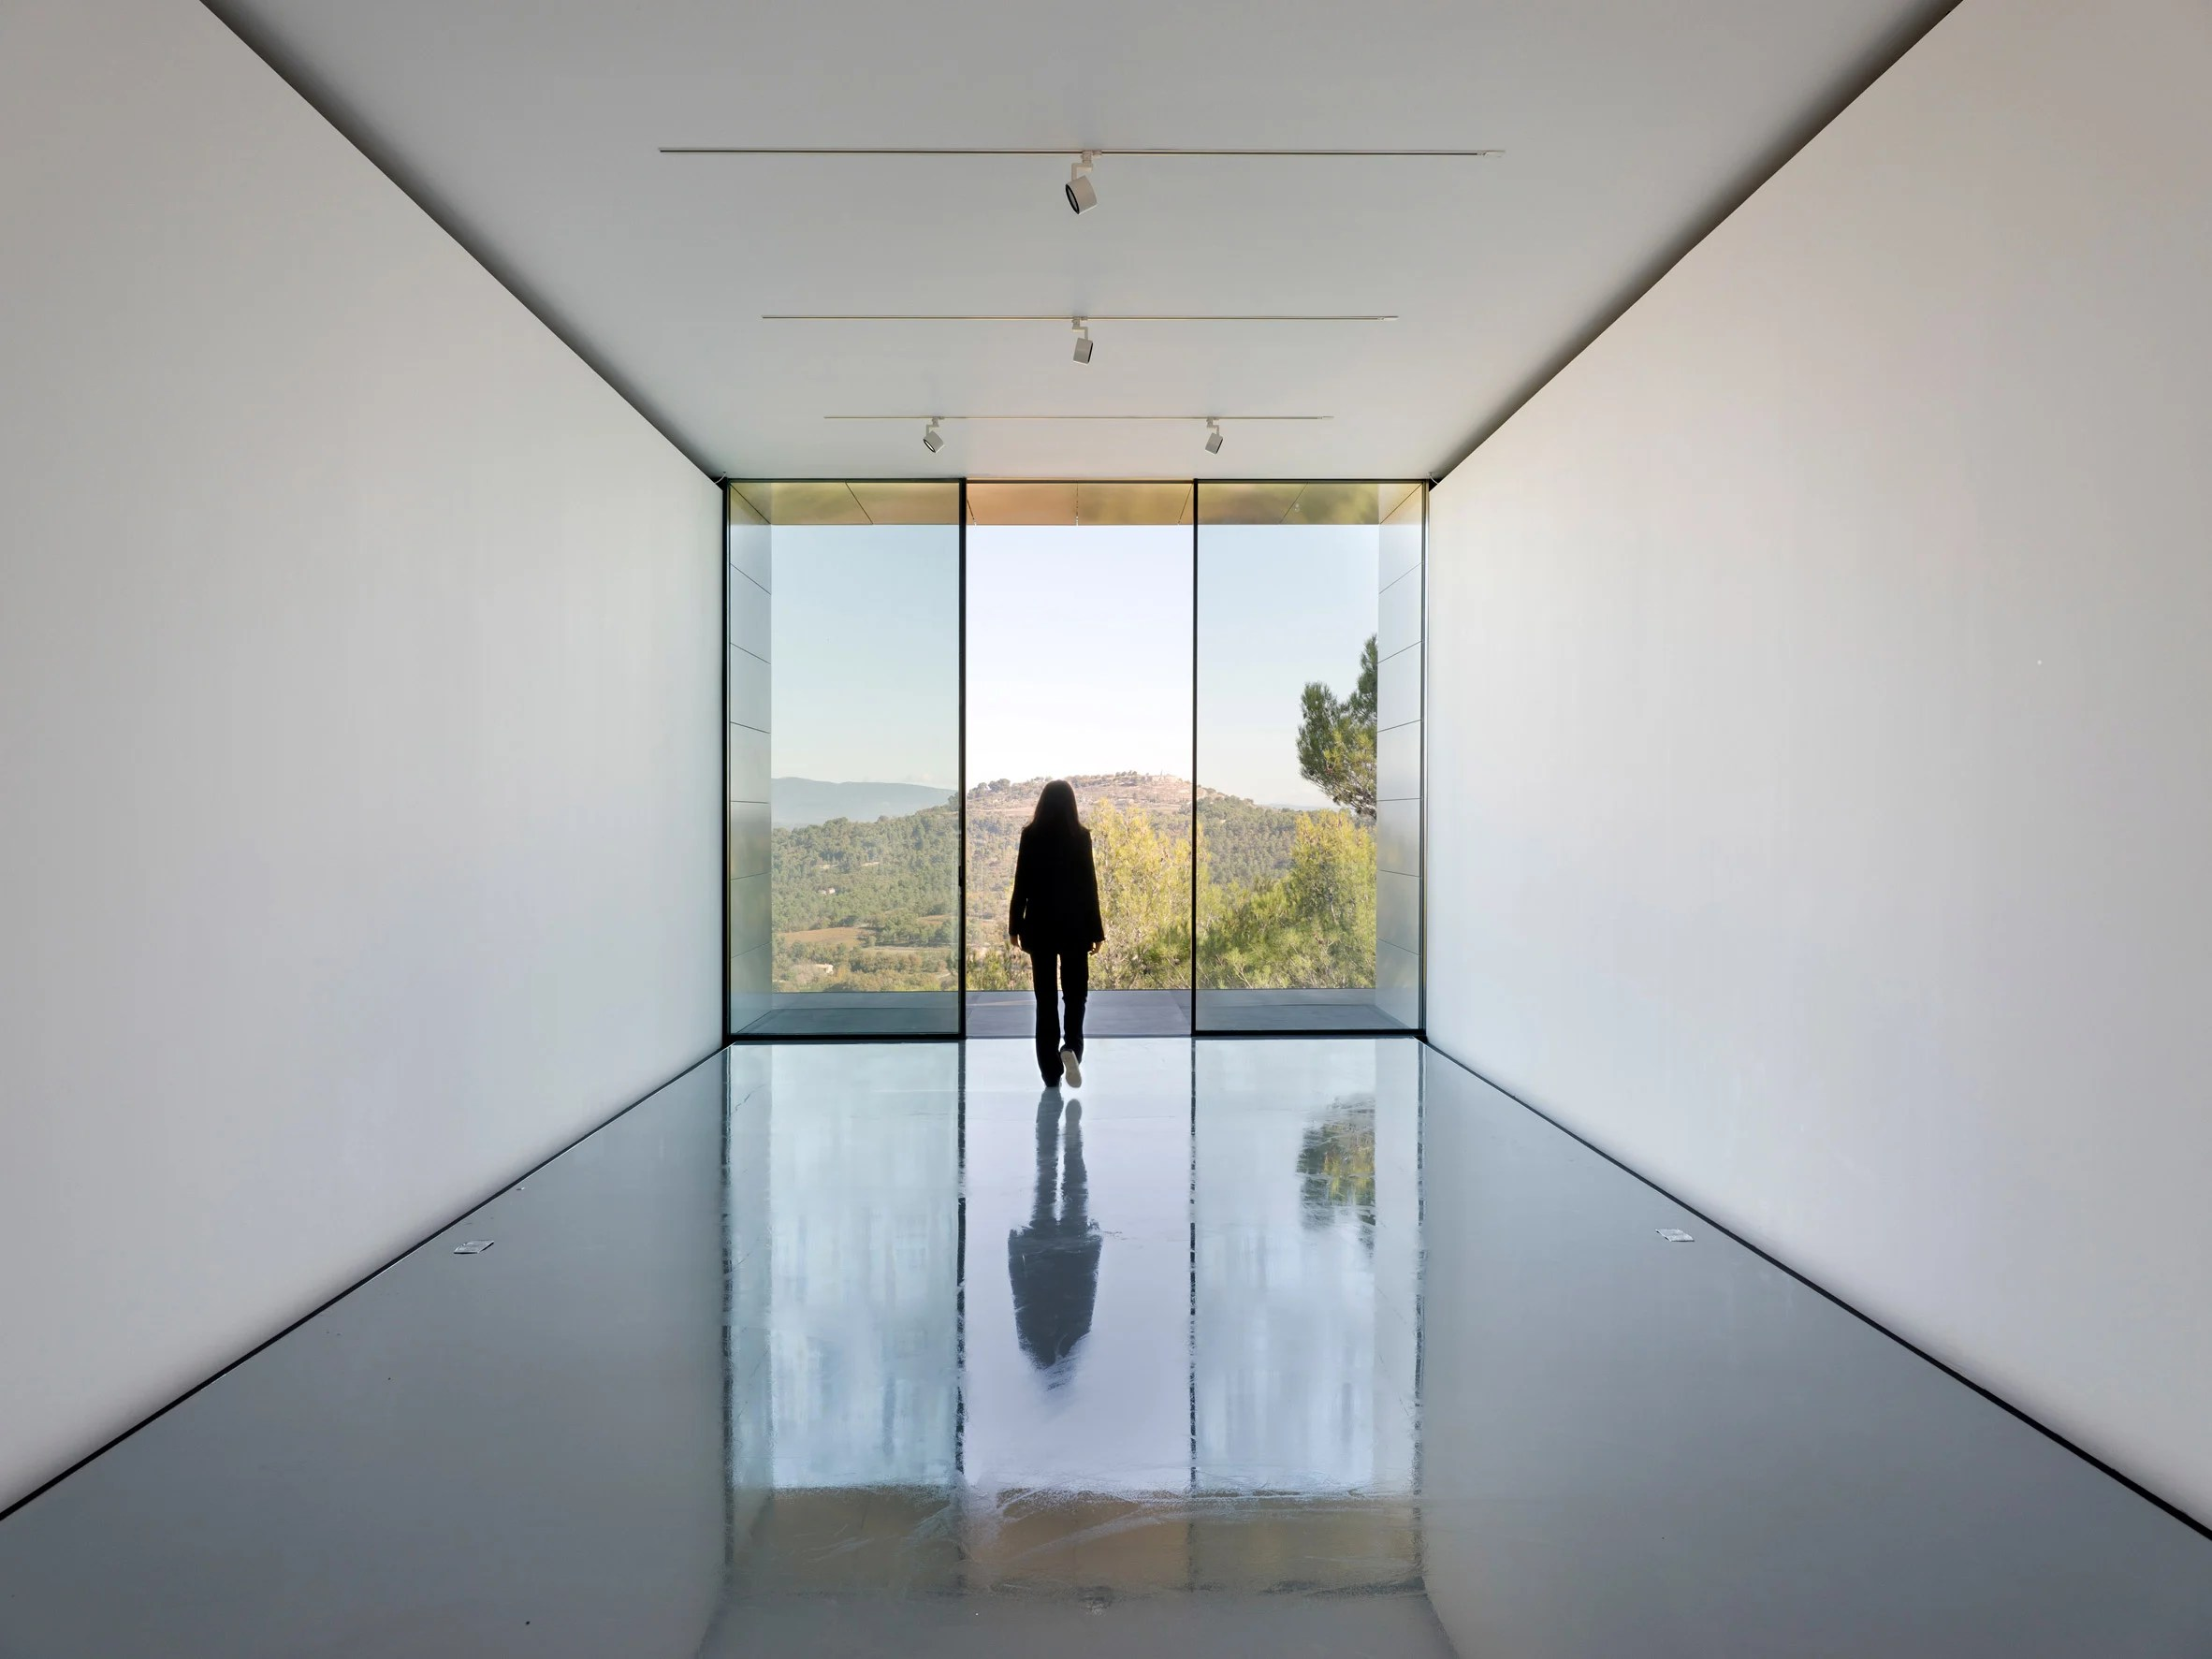 Gallery with views across a vineyard